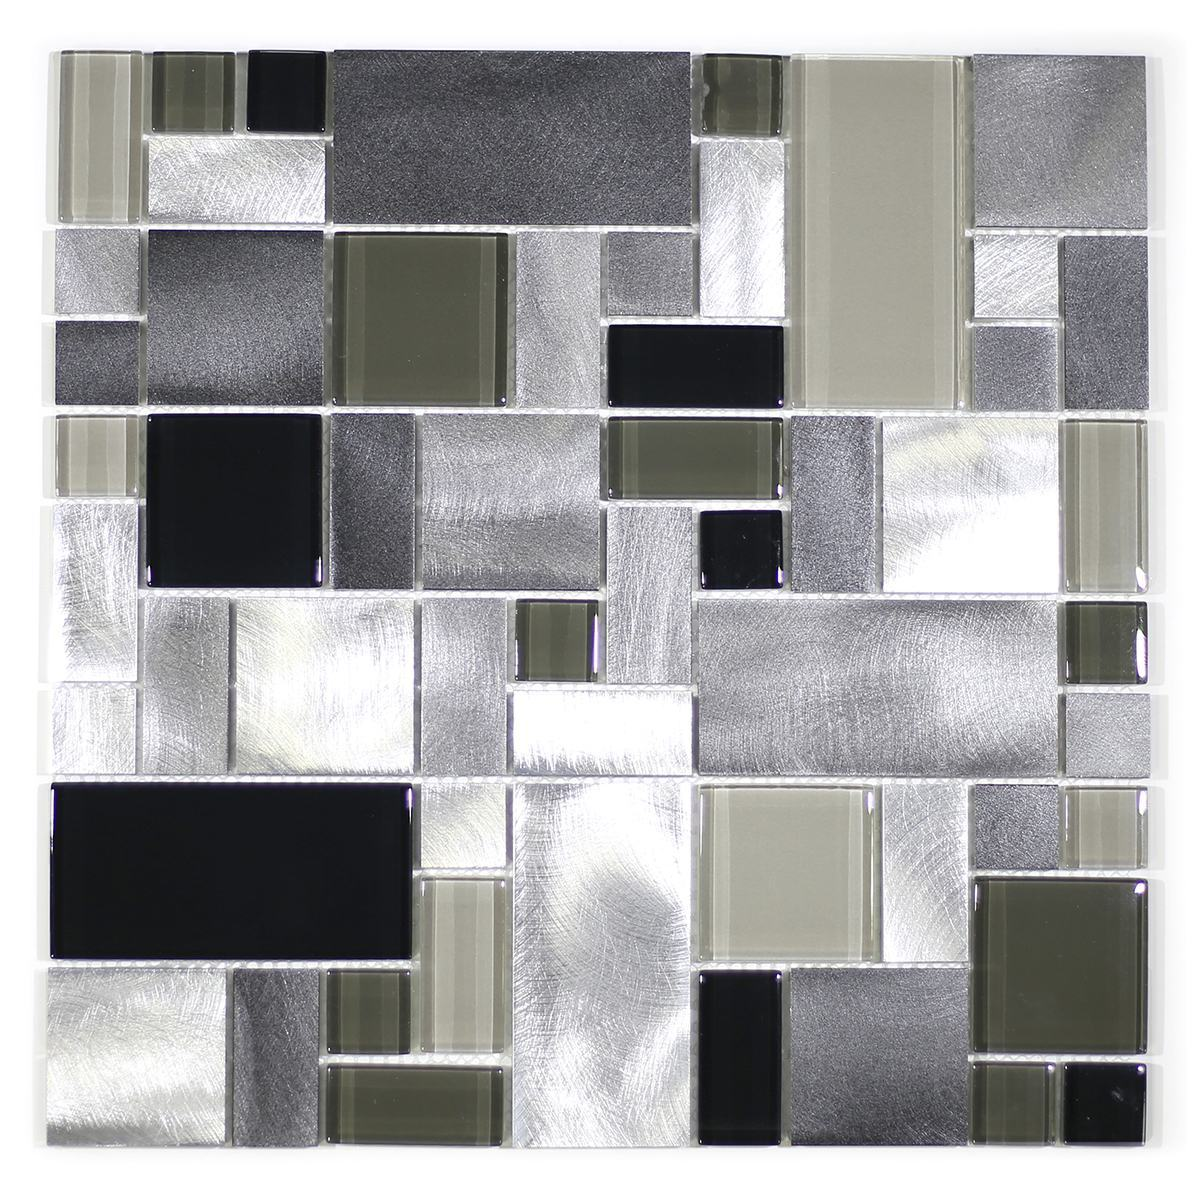 MA64-RM  RANDOM GLASS, STONE AND ALUMINUM COATING MOSAIC MIX